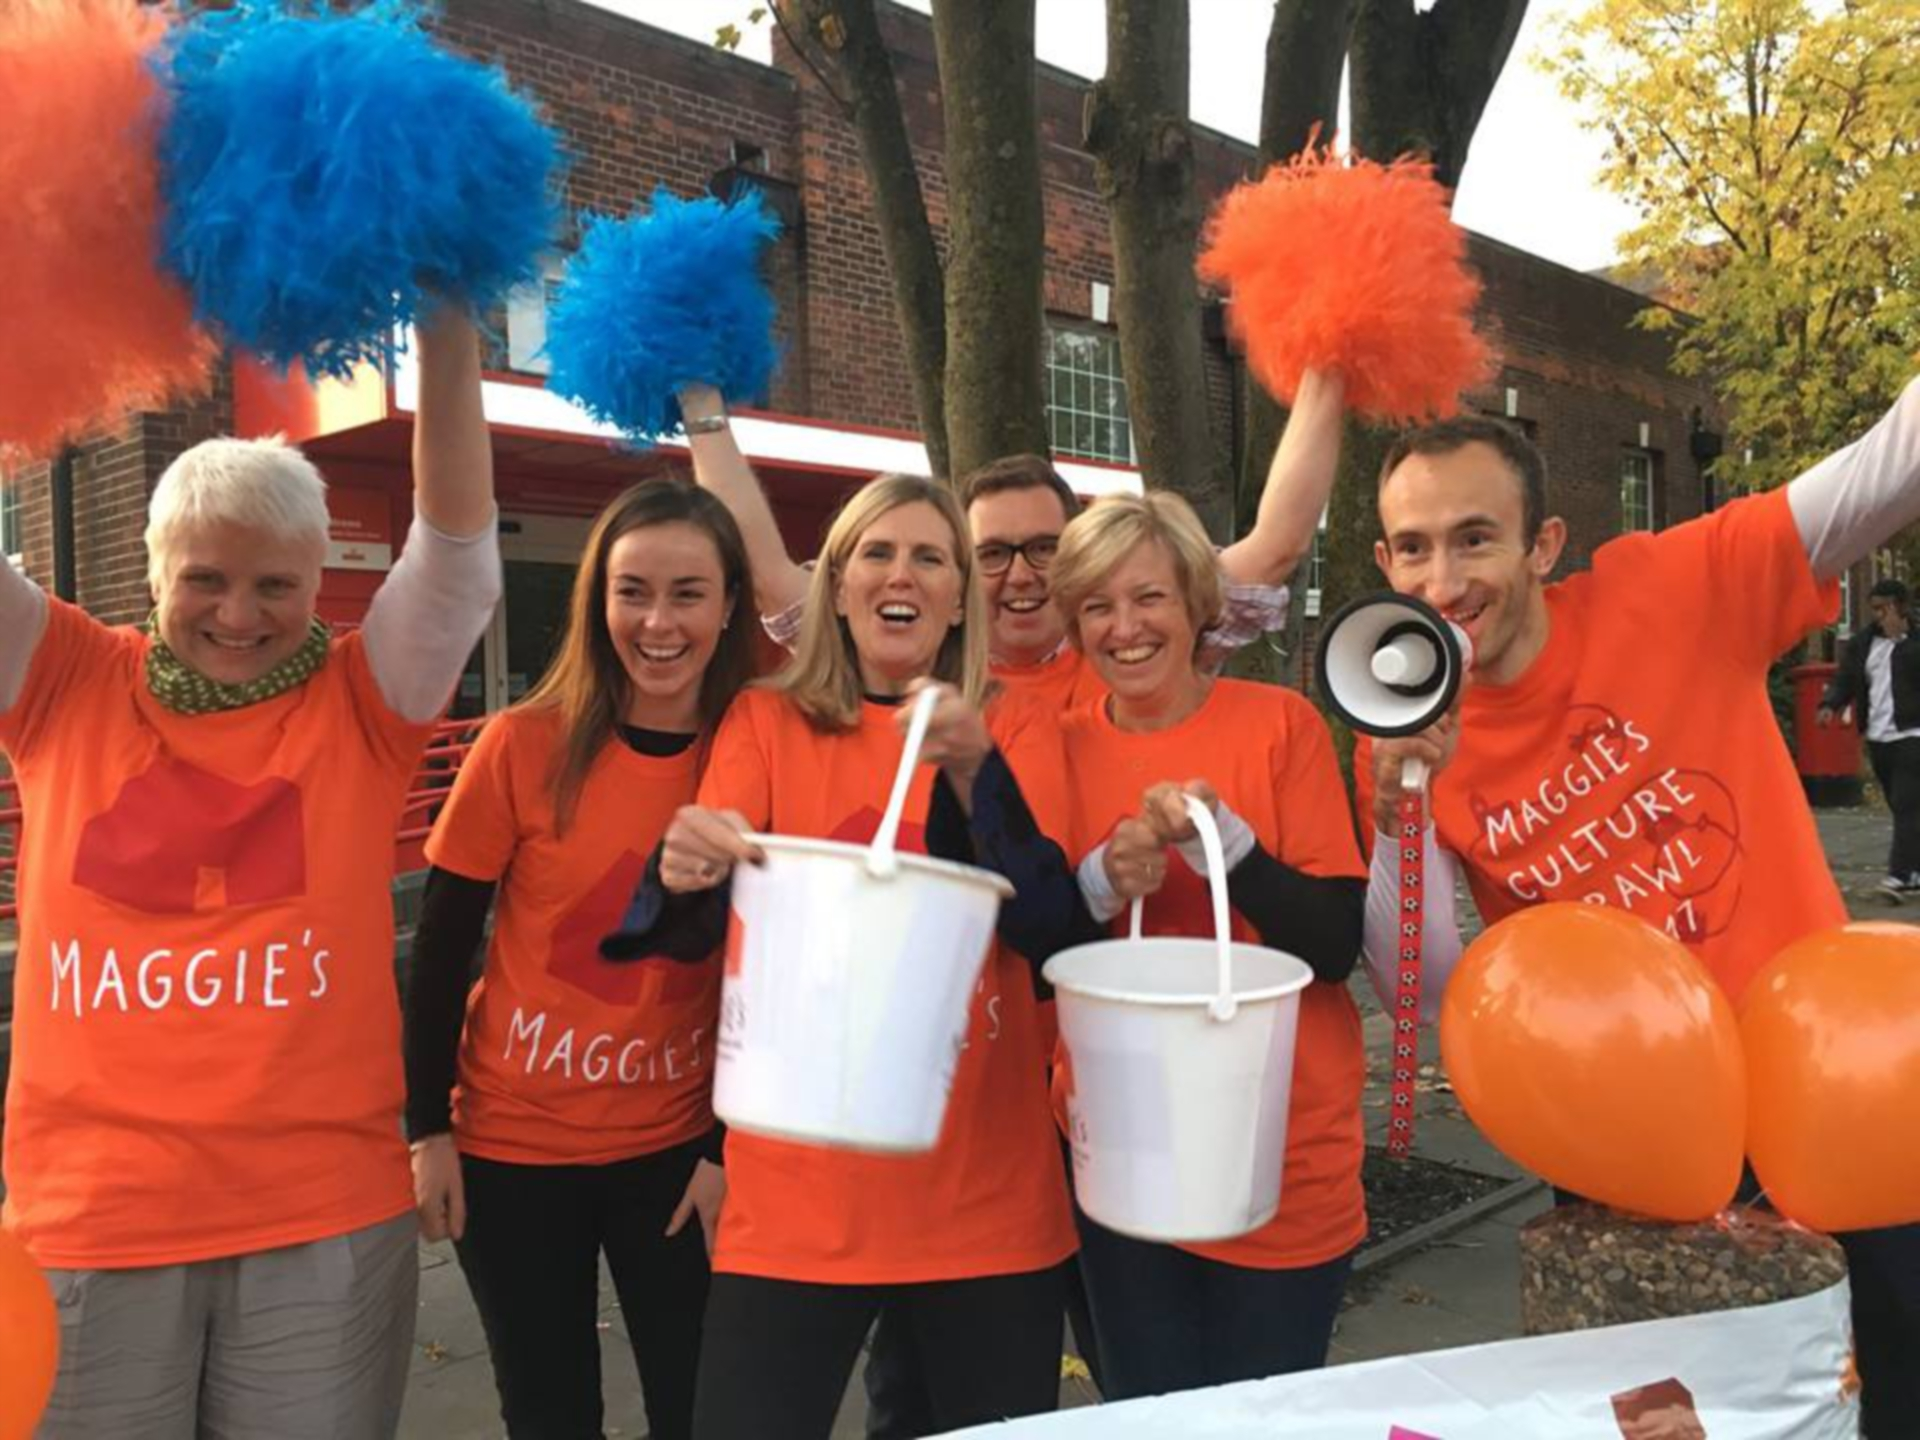 Maggie's fundraisers make a world of difference.